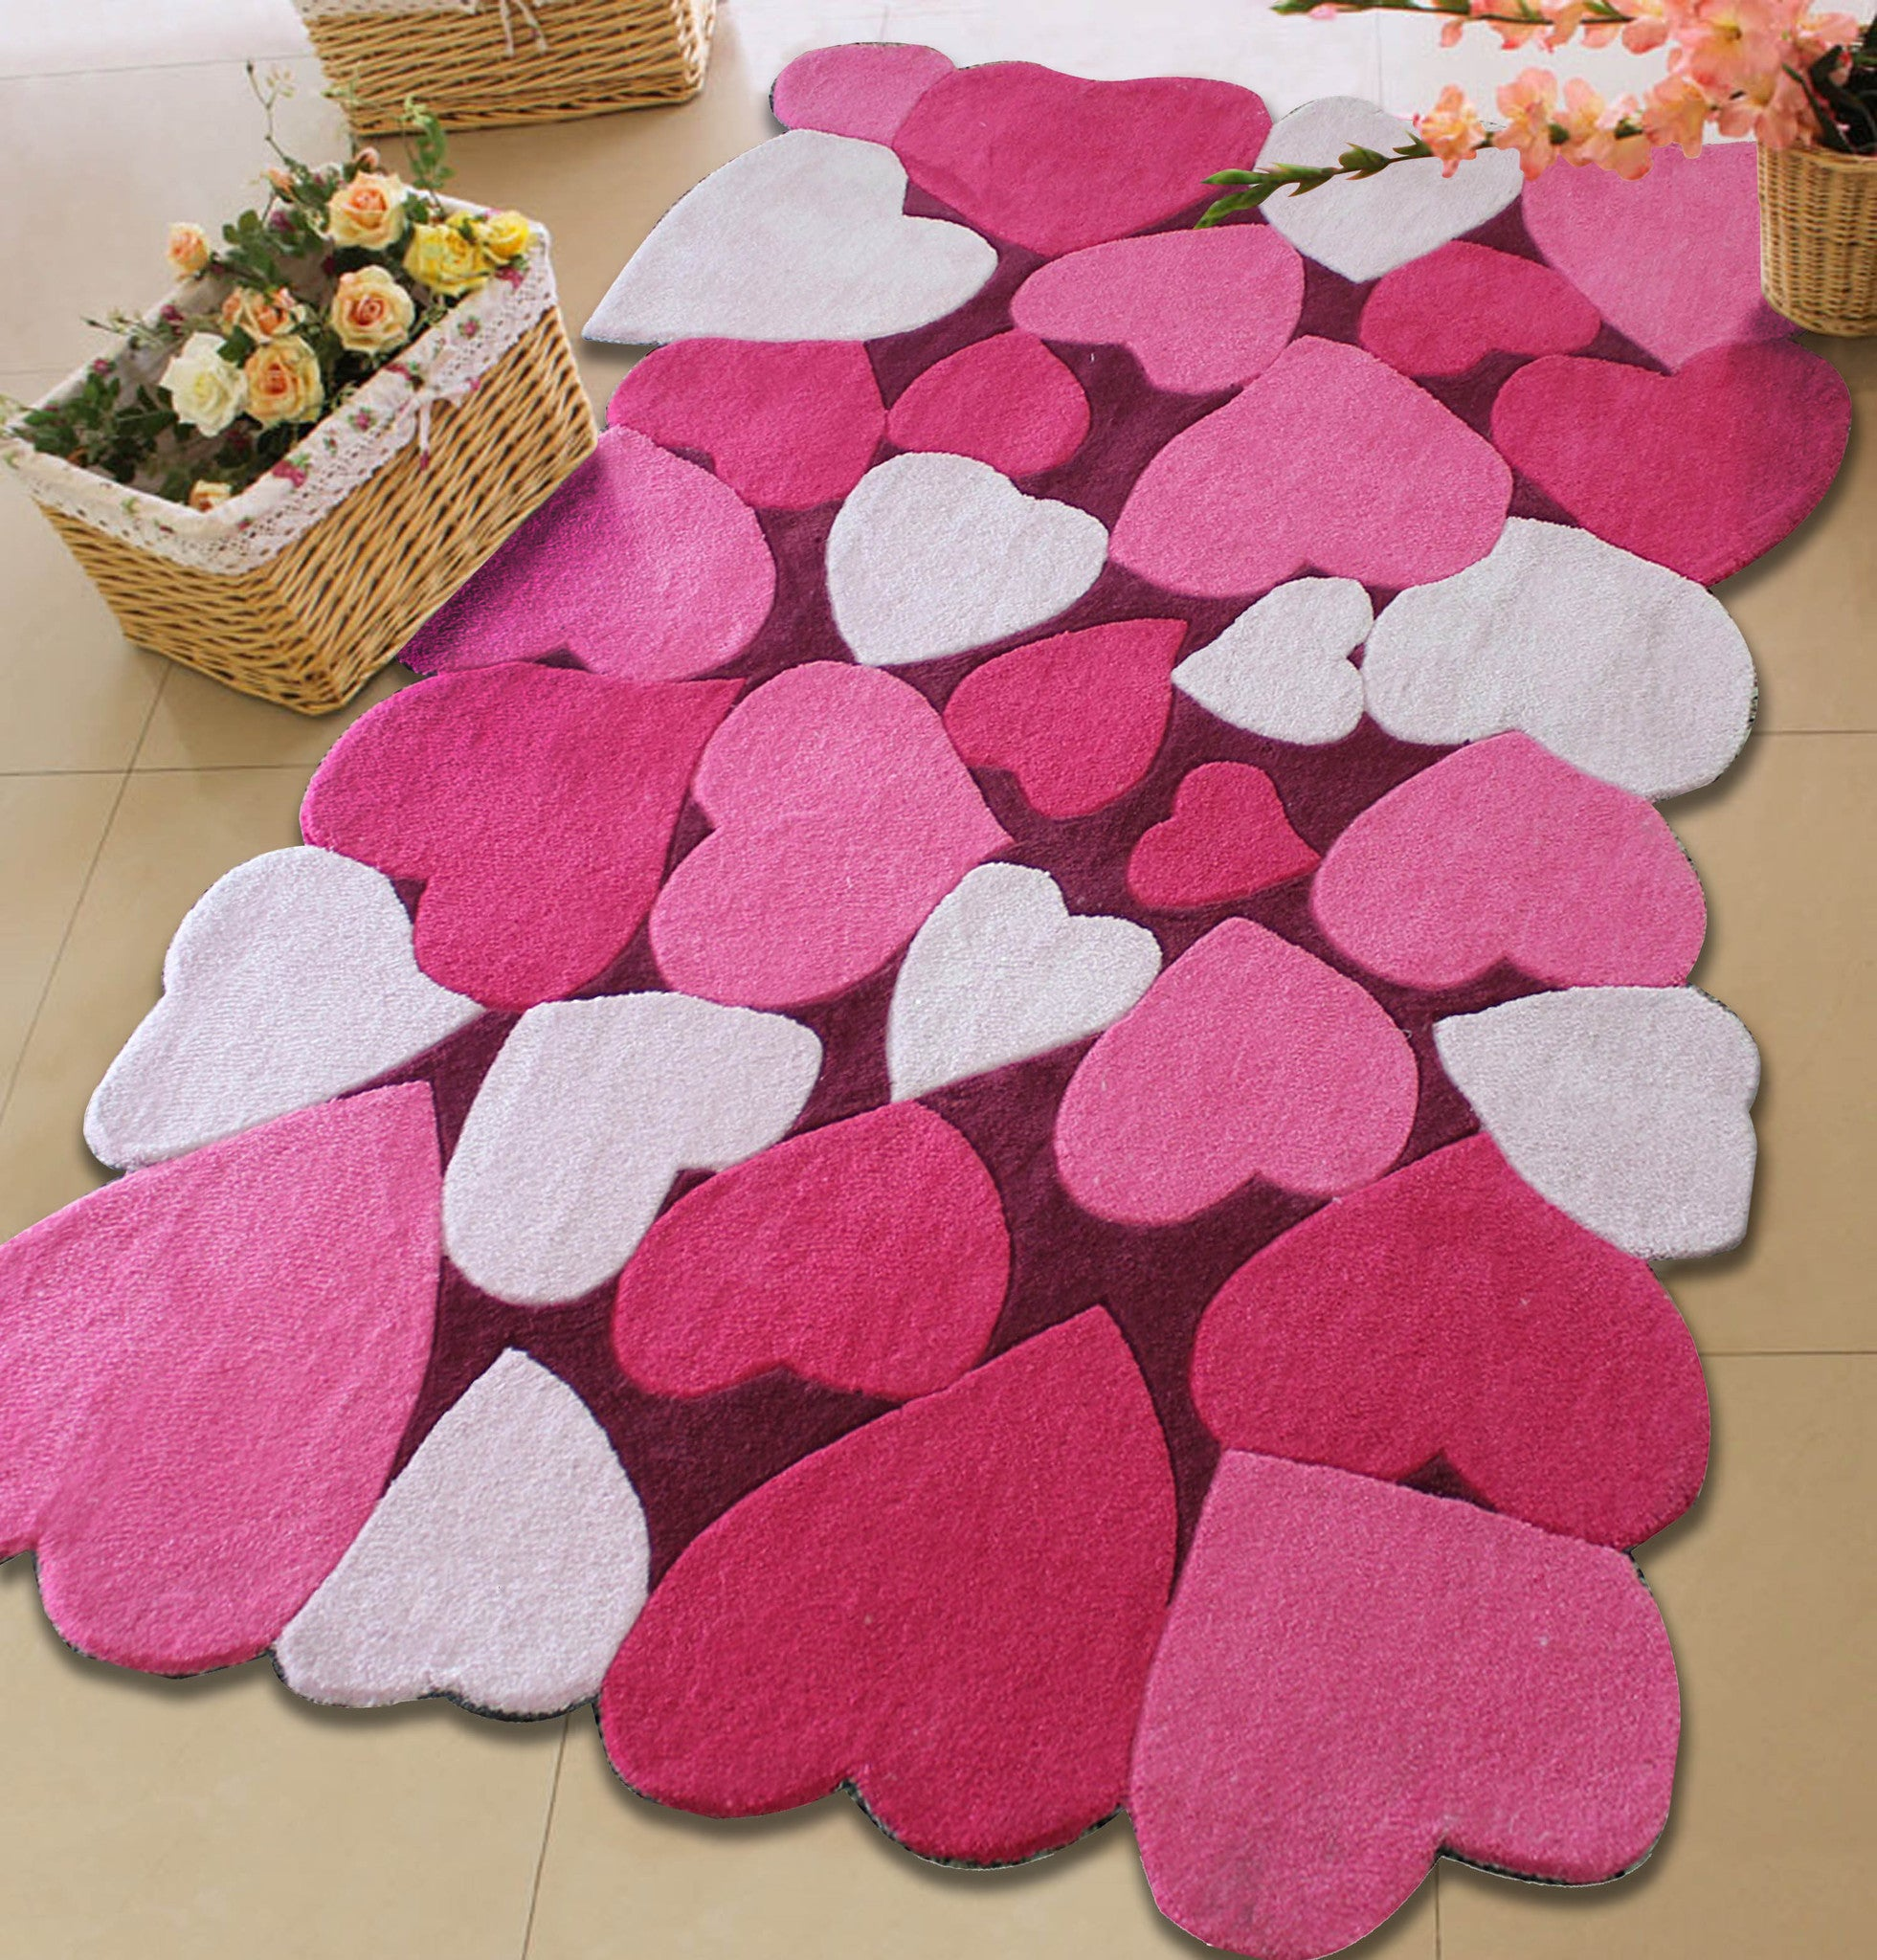 X Ft Kids All Pink Bedroom Area Rug With Hearts Patterns